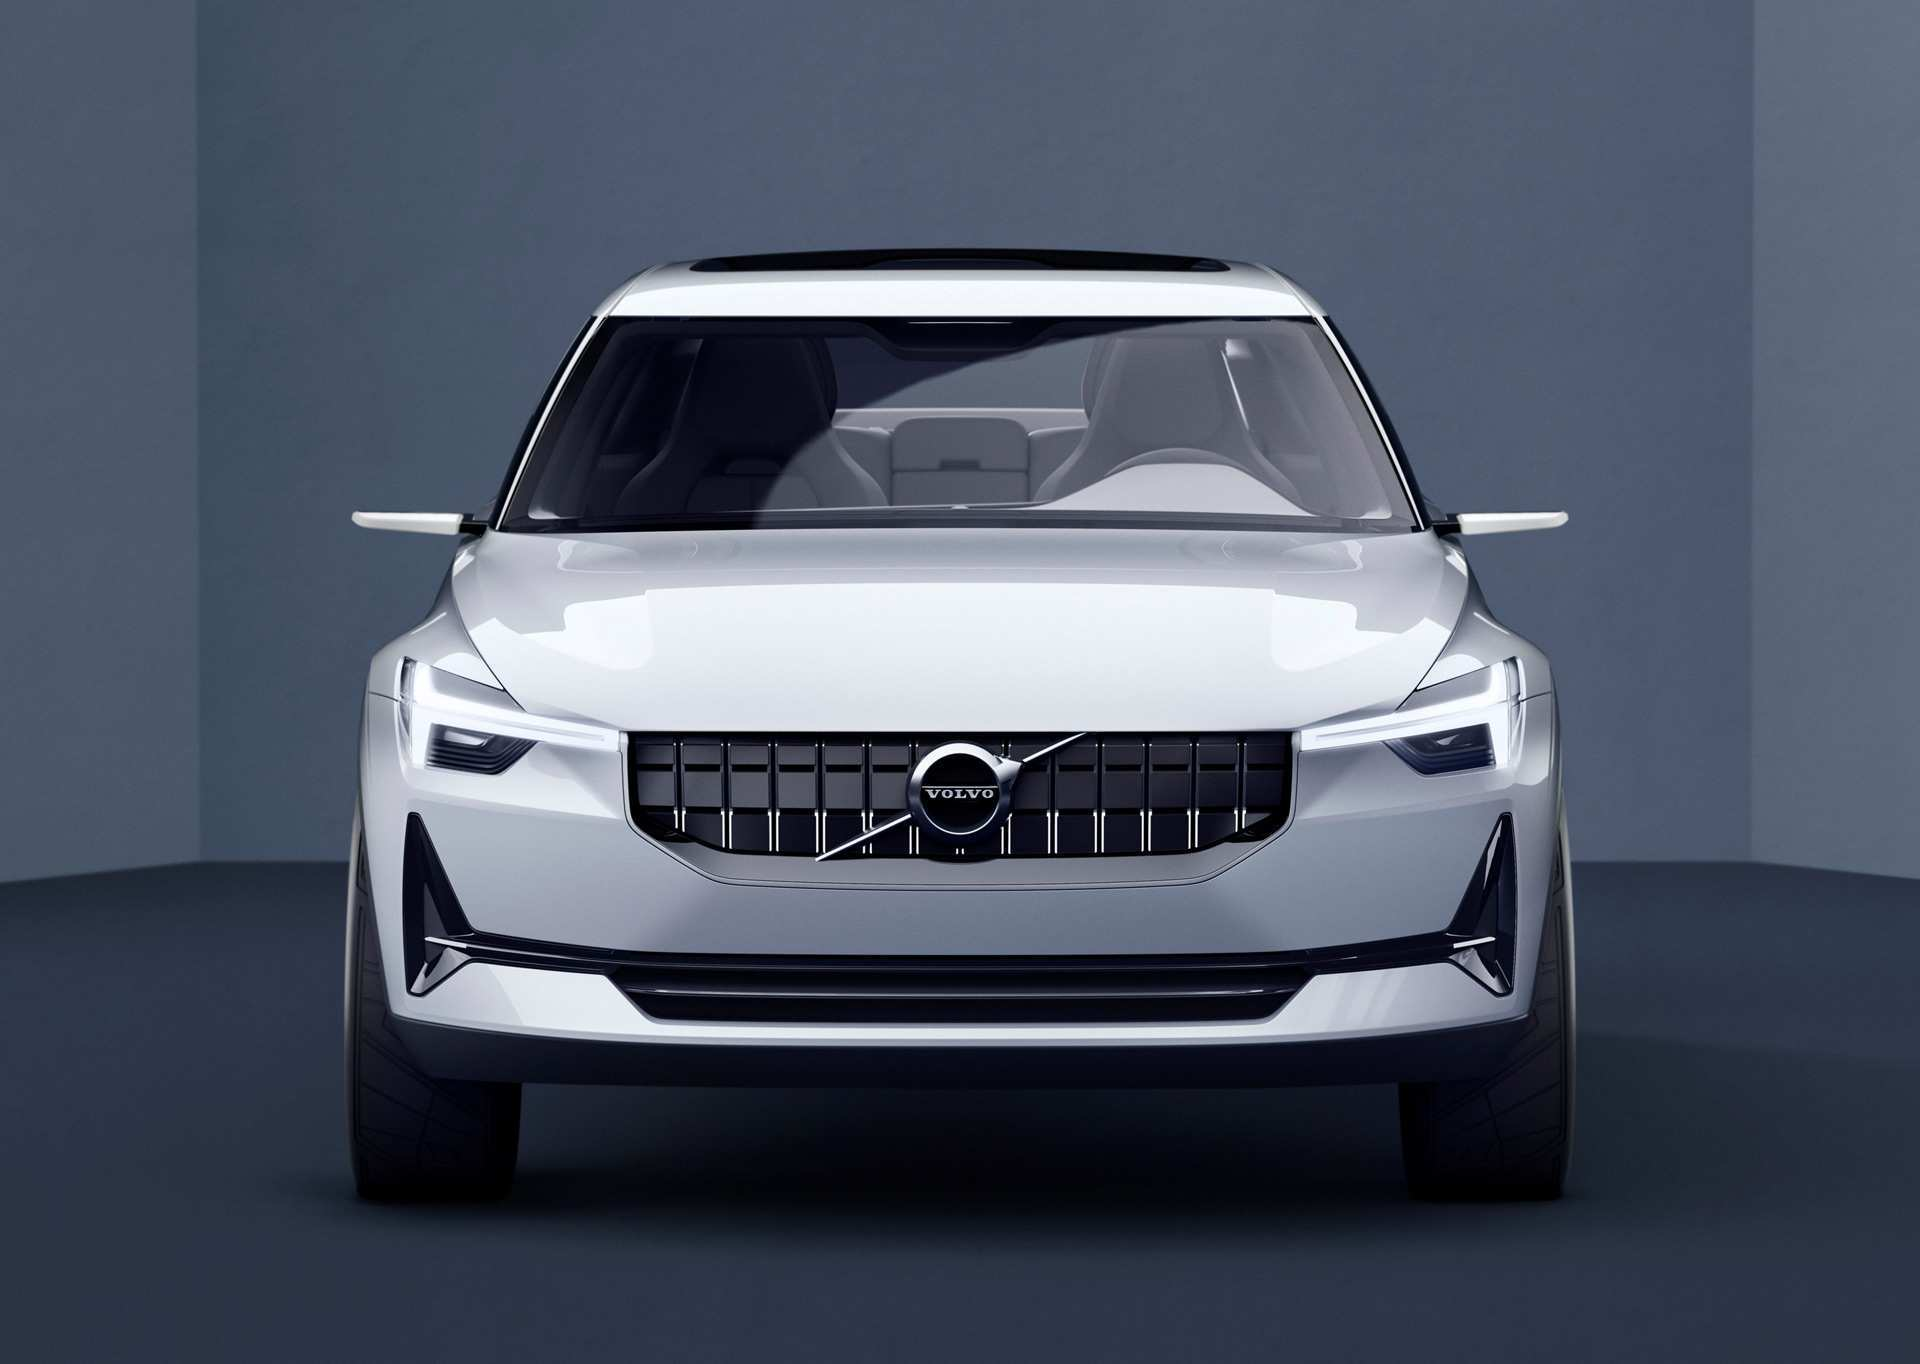 69 All New Volvo All Electric 2020 Spesification by Volvo All Electric 2020